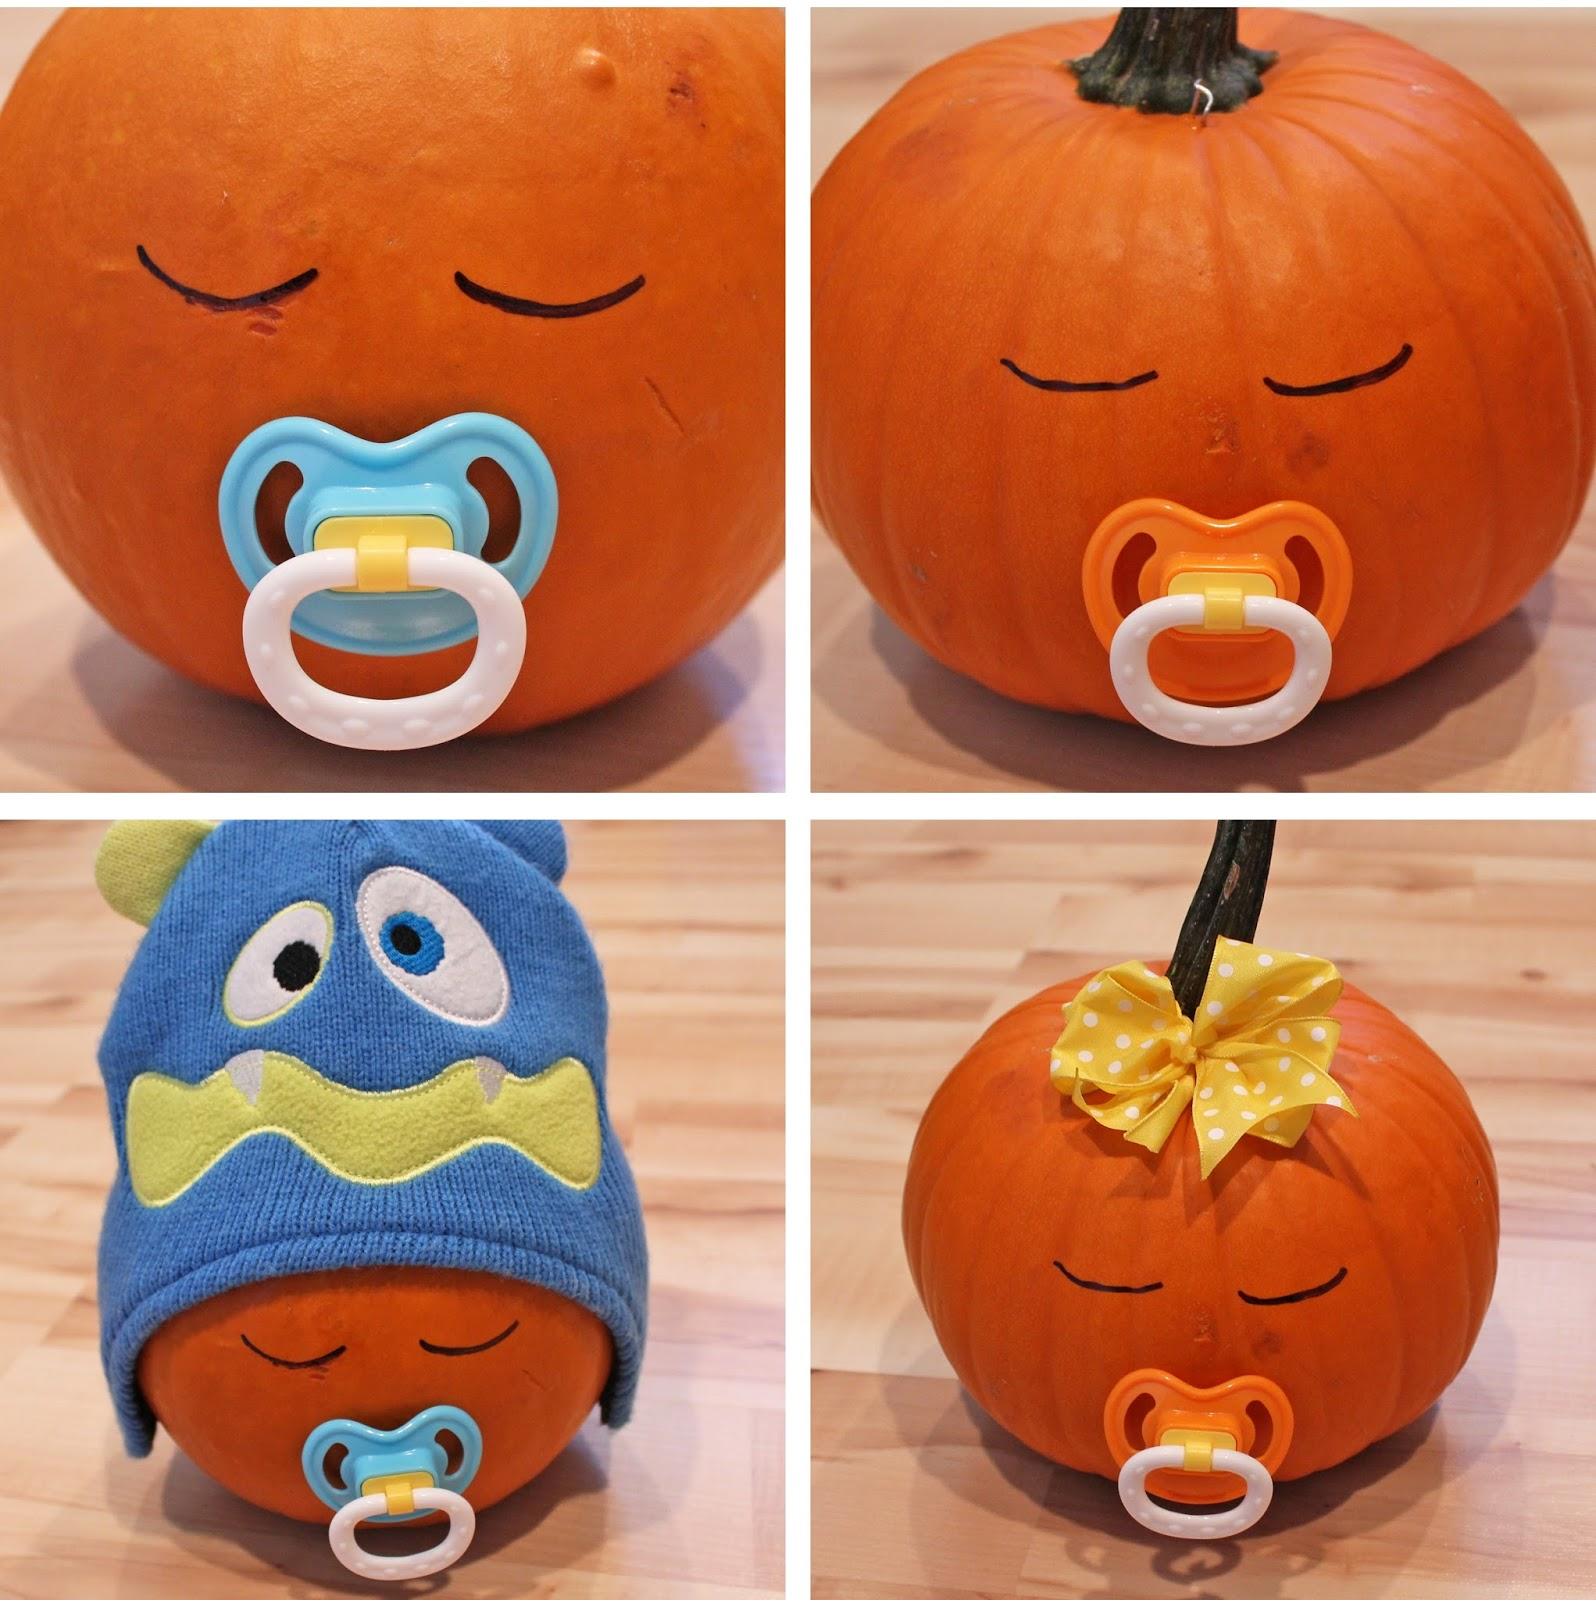 Funny pumpkin painted design ideas art projects